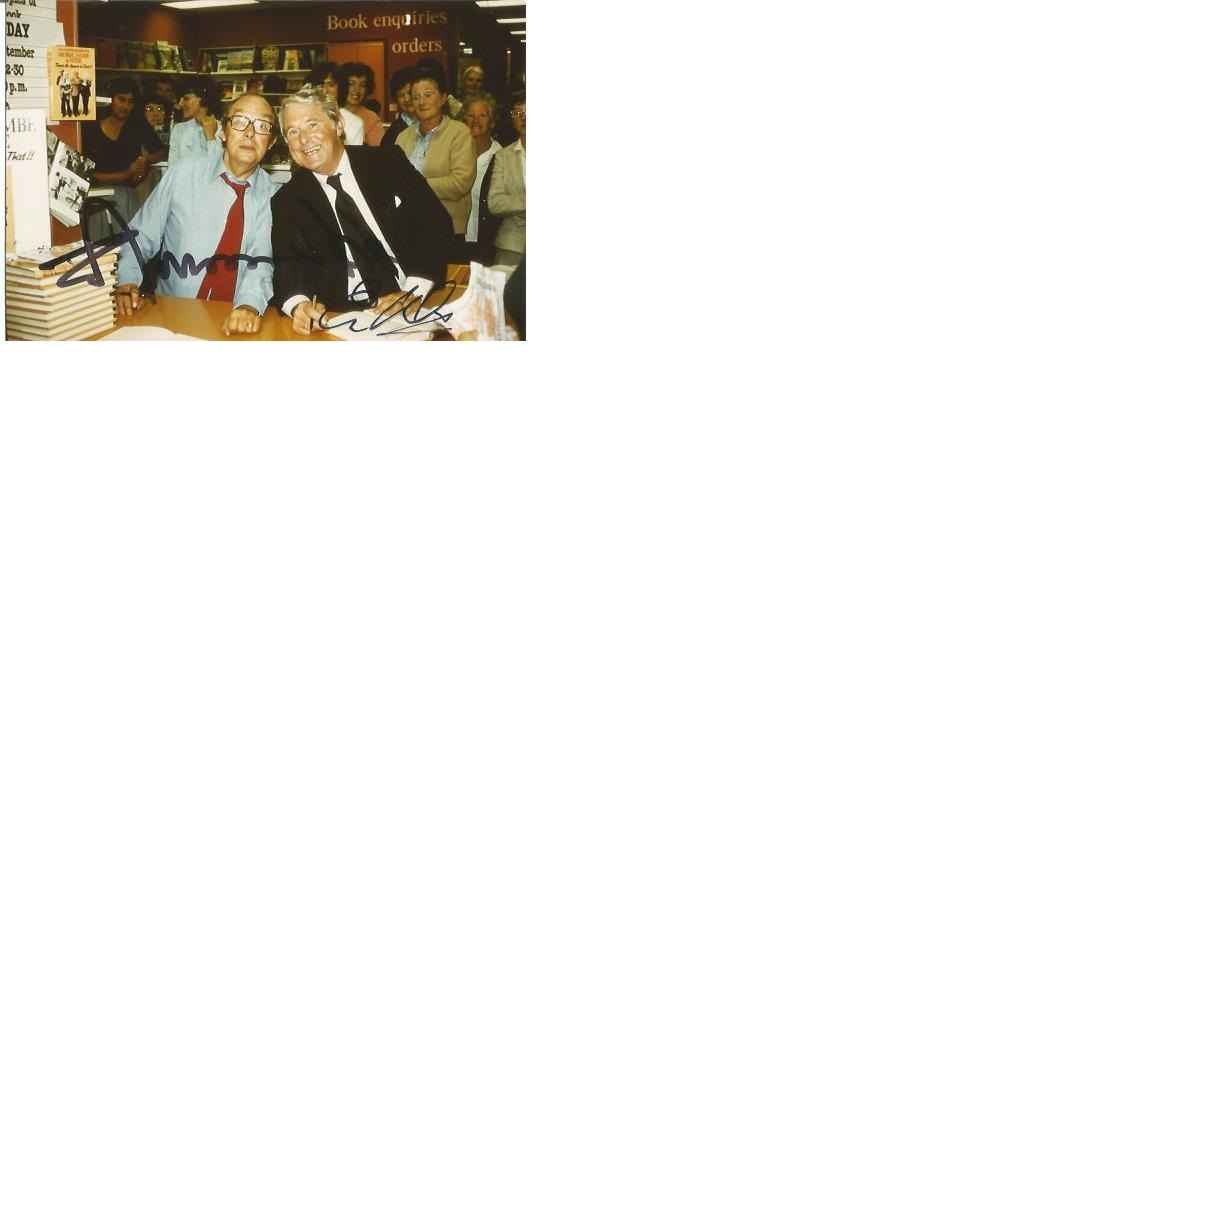 Lot 33 - Eric Morecambe and Ernie Wise signed 6 x 4 colour photo at a book signing. Good Condition. All